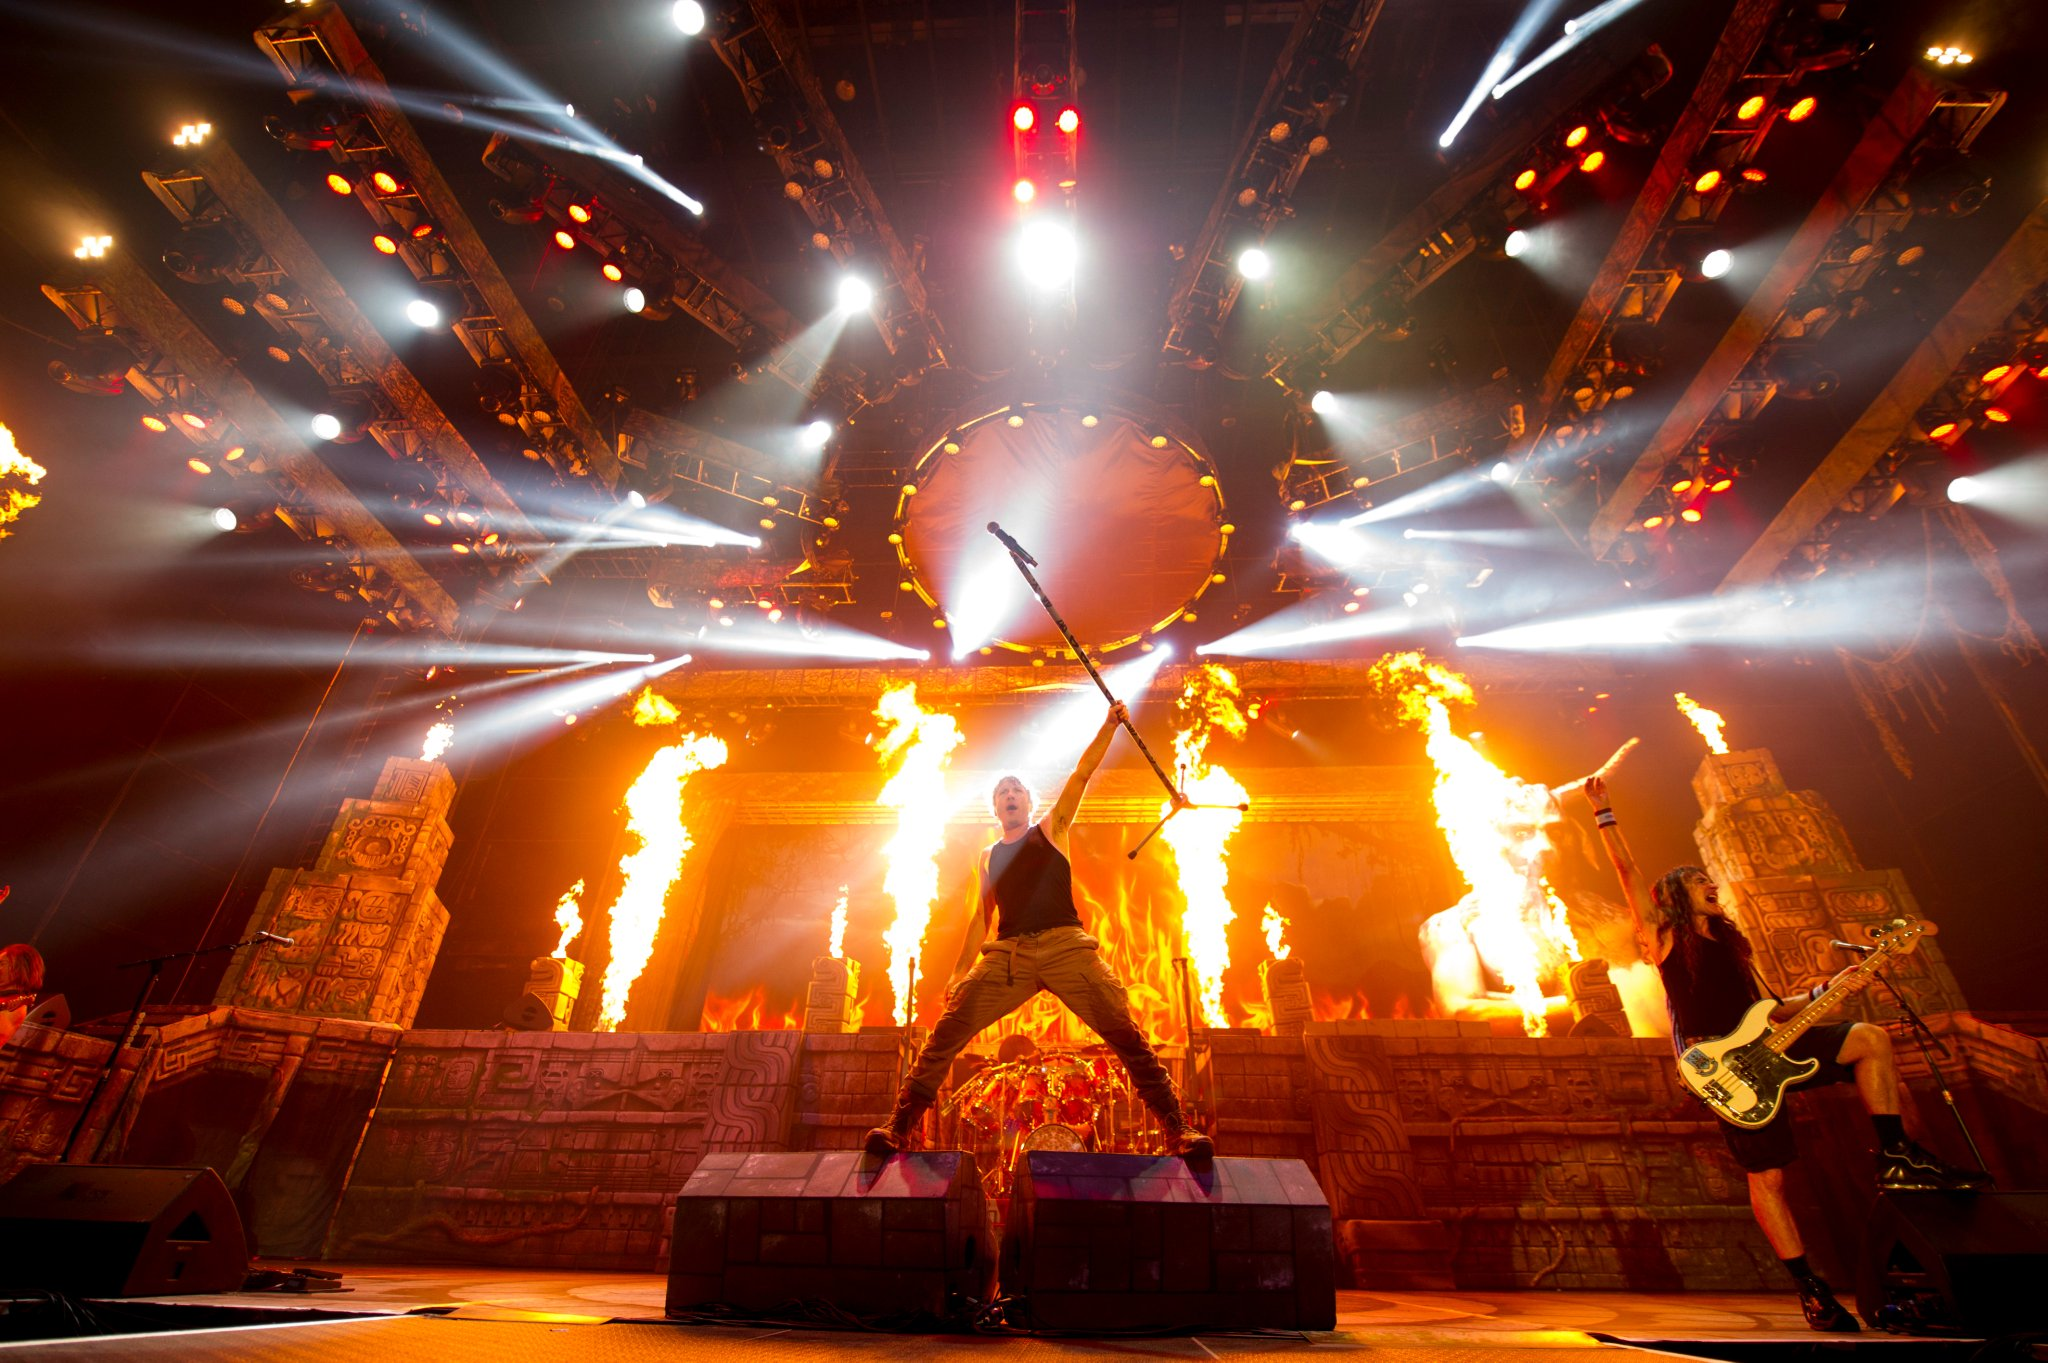 Arte Concert Wacken Iron Maiden To Live Stream Final Show Of The Book Of Souls World